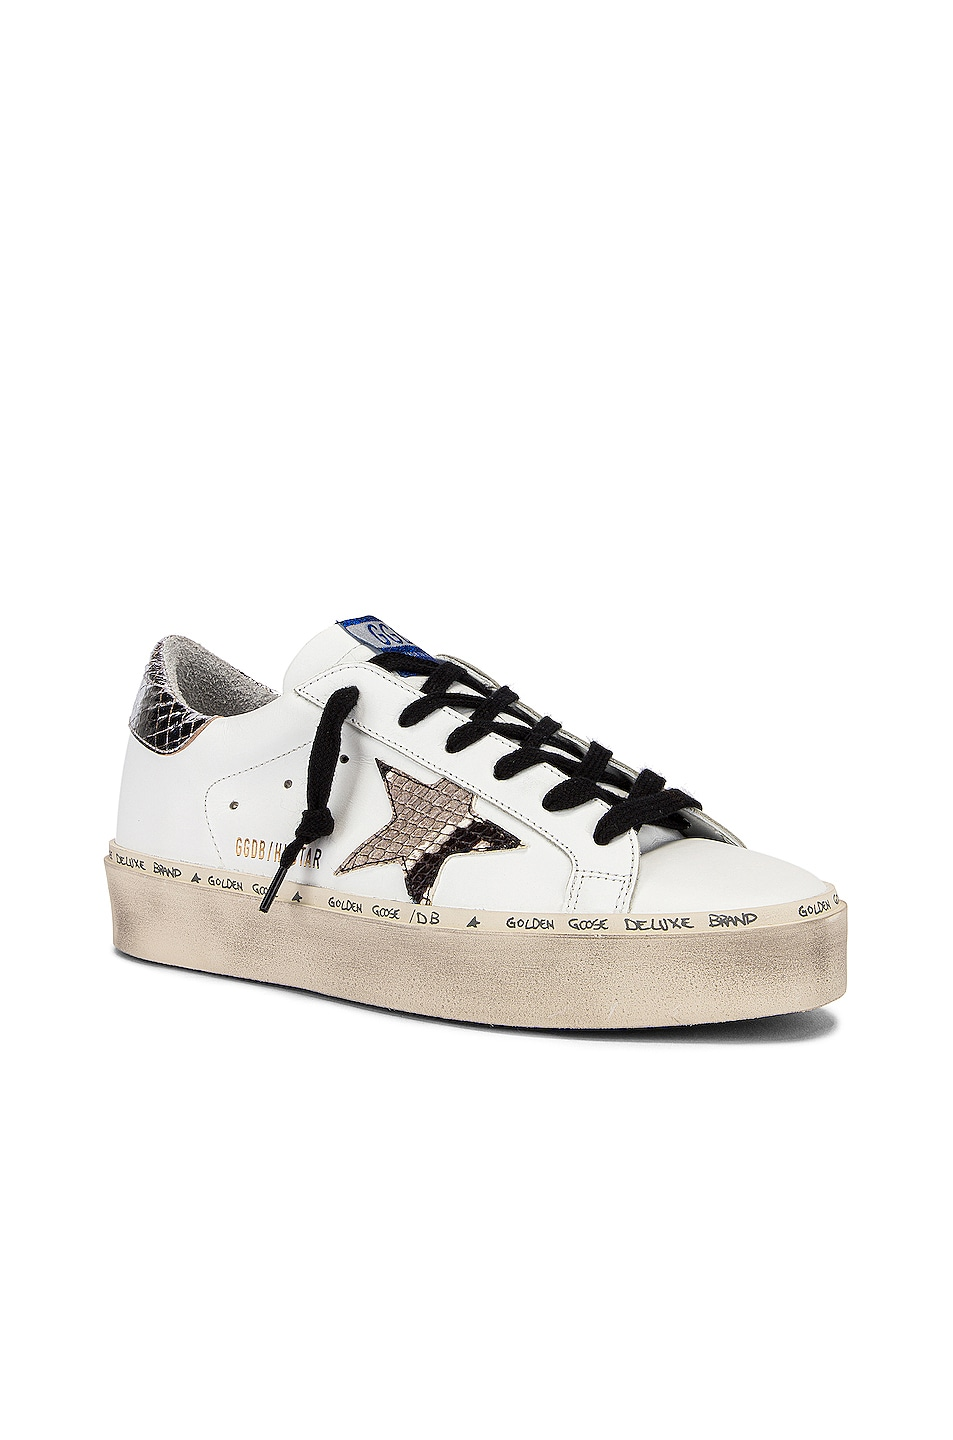 Image 2 of Golden Goose Hi Star Sneaker in White & Natural Snake